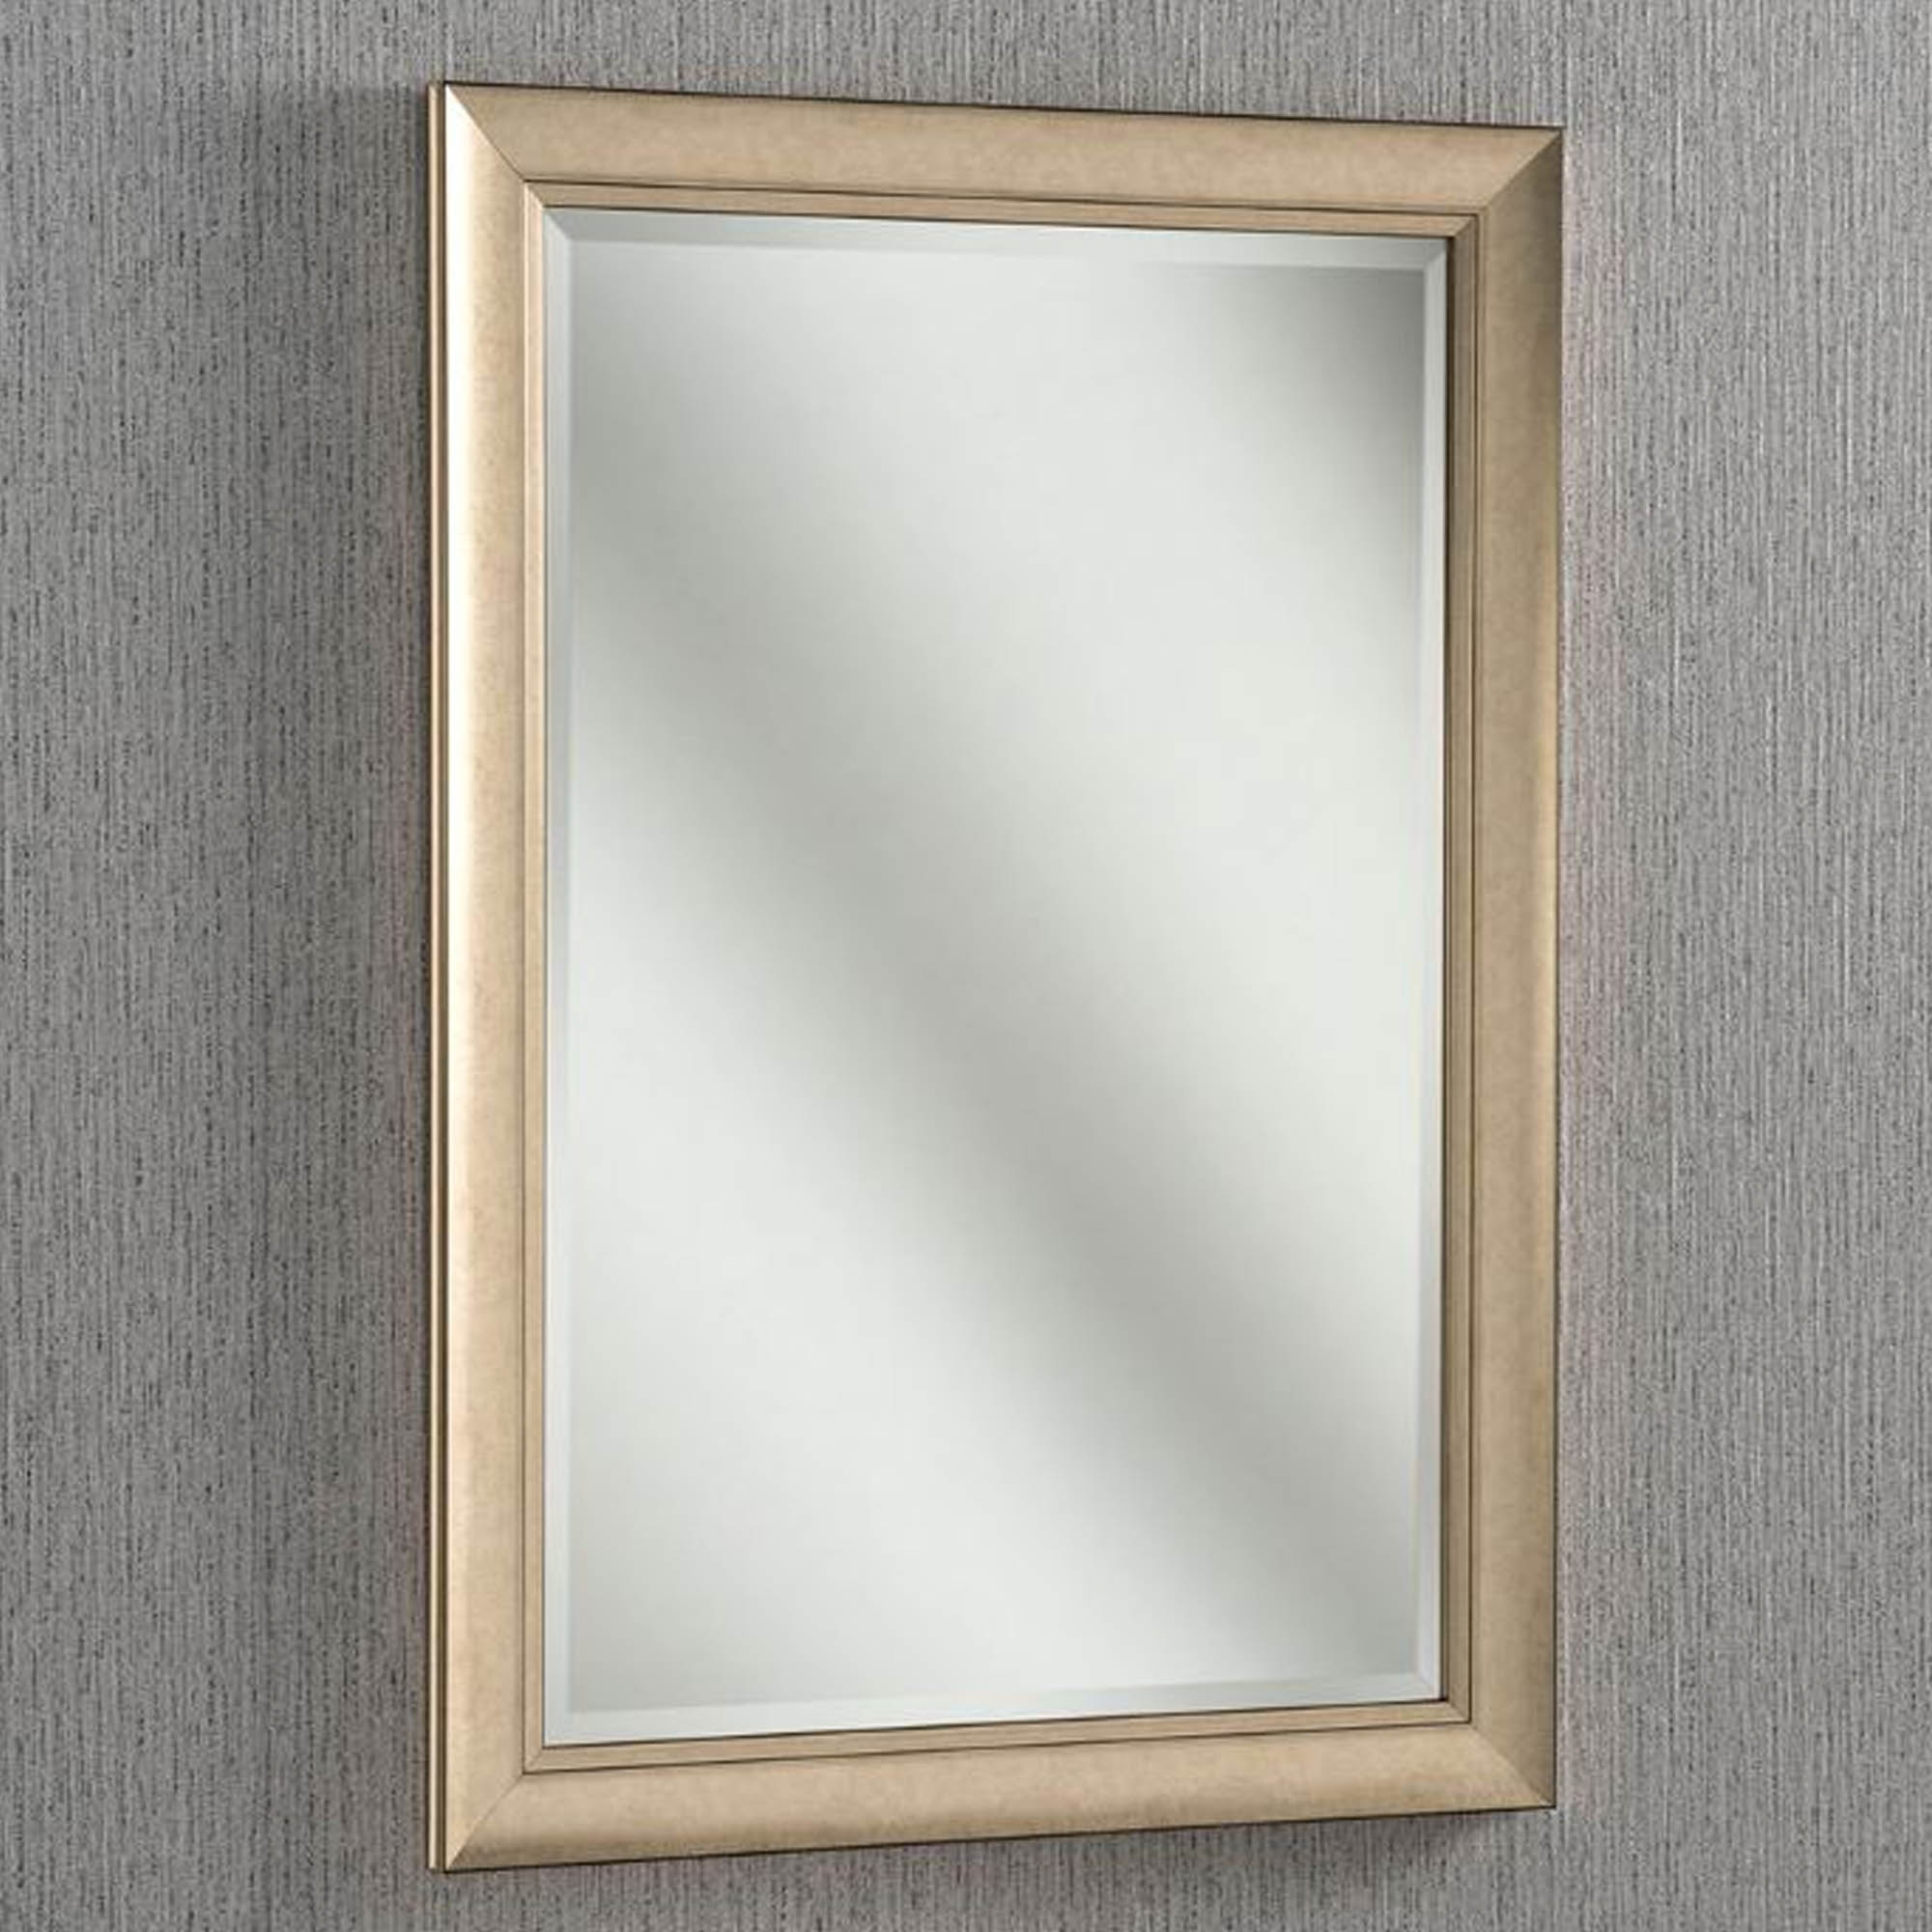 Champagne Bevelled Frame Contemporary Wall Mirror Wall Mirror